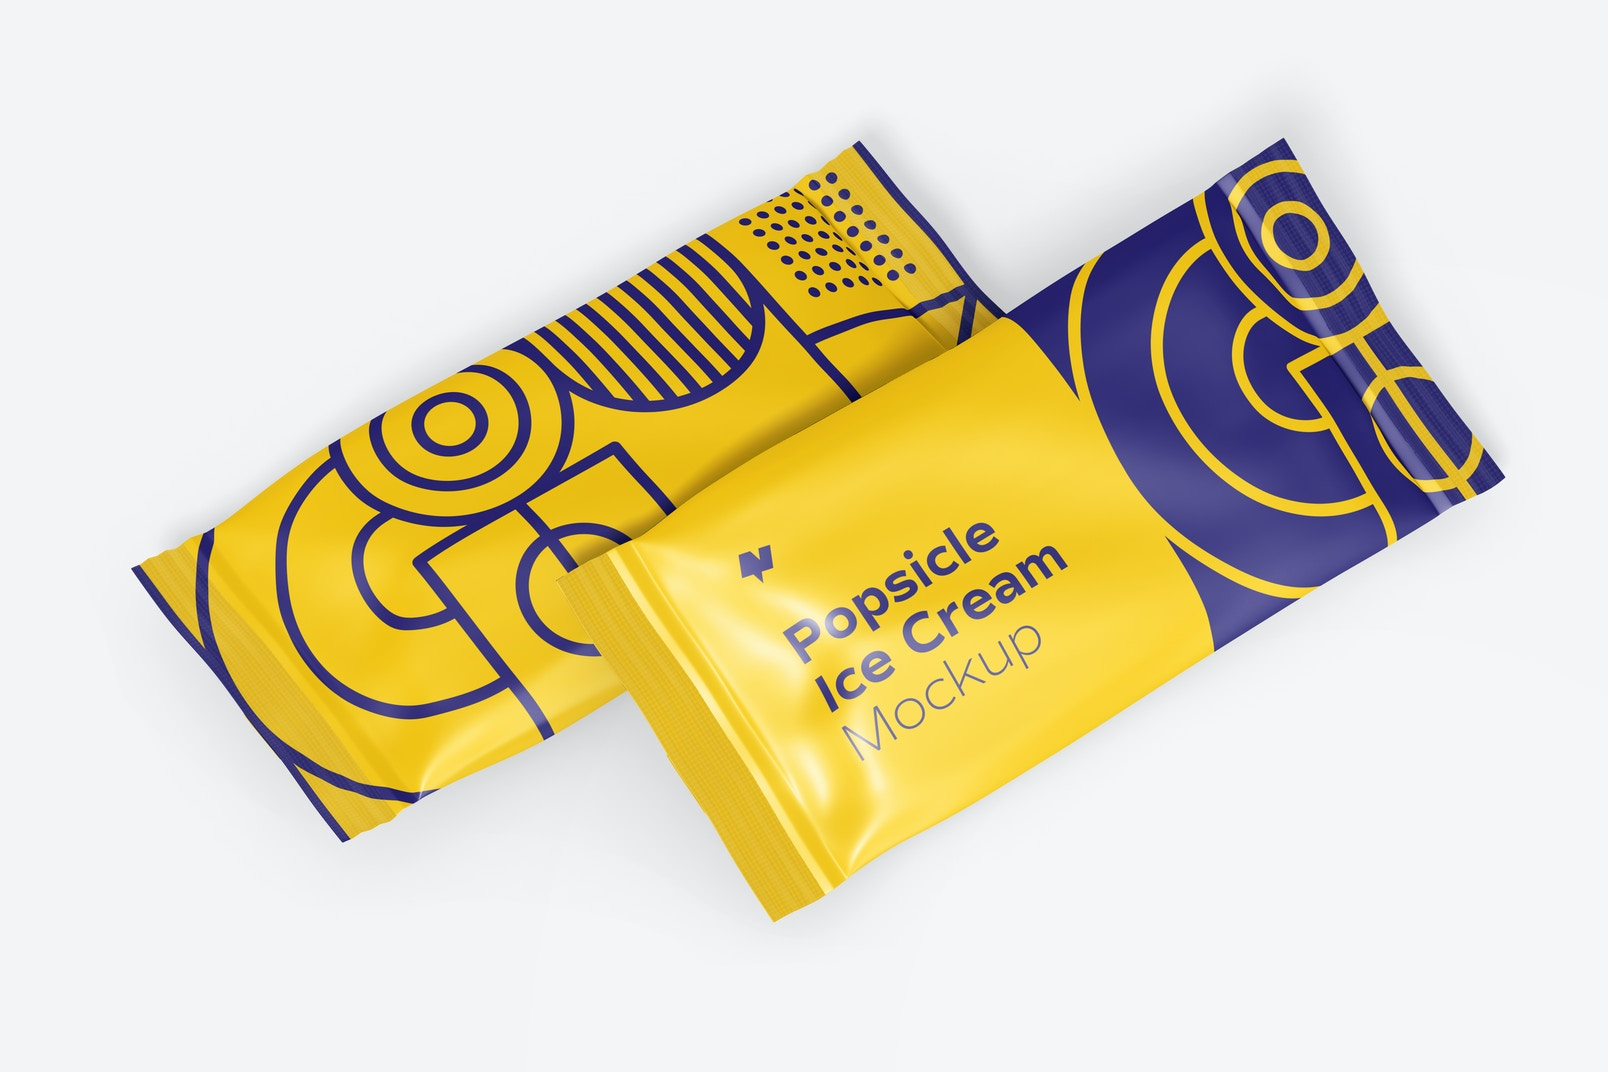 Popsicle Ice Cream Packaging Mockup, Right View